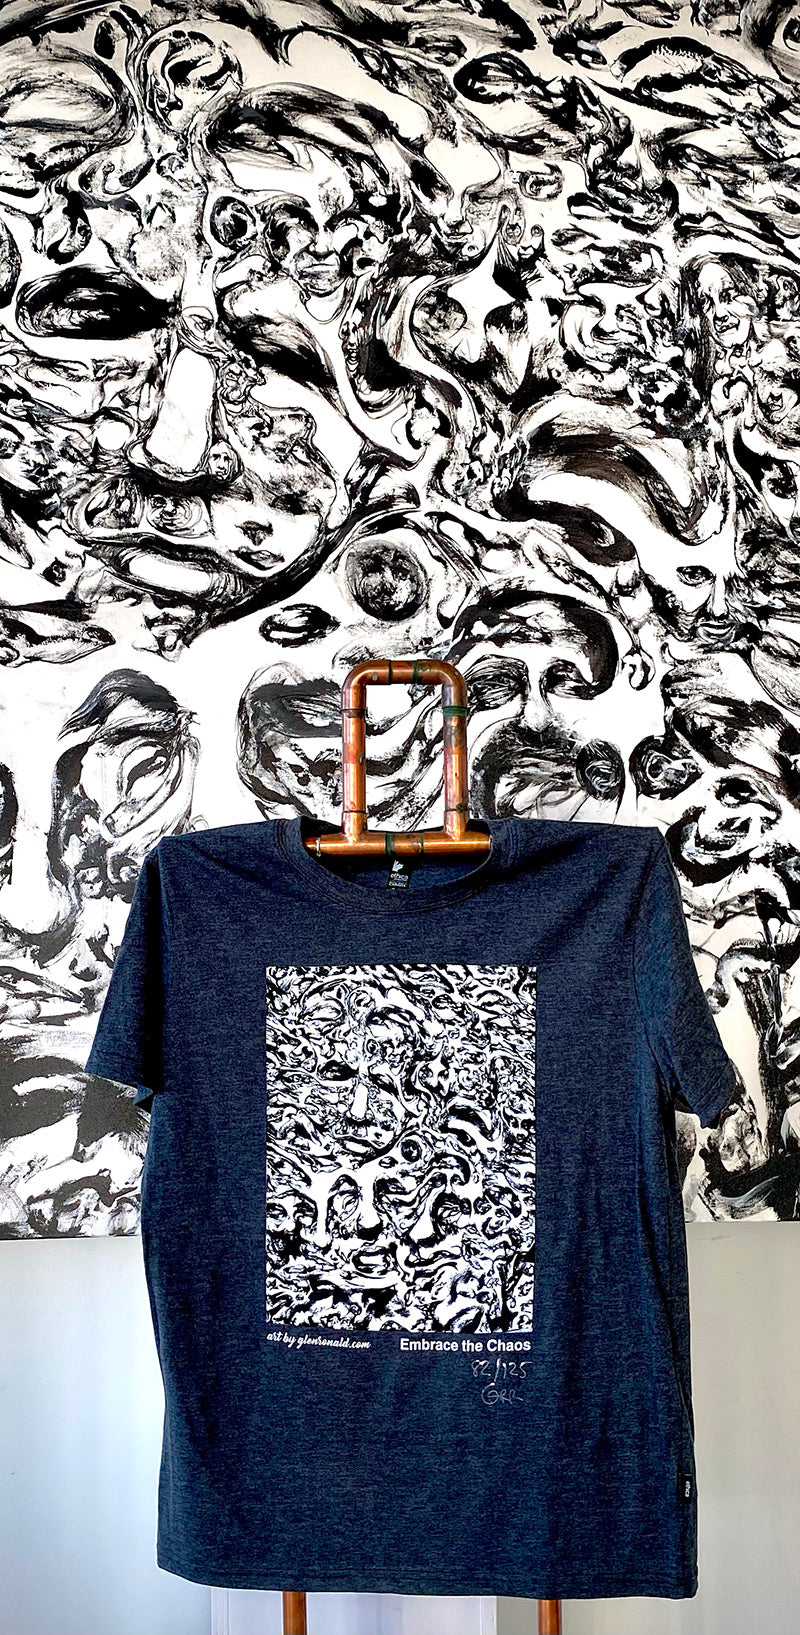 GlenRonald Art Eco T-Shirt Small Grey - Signed and Numbered